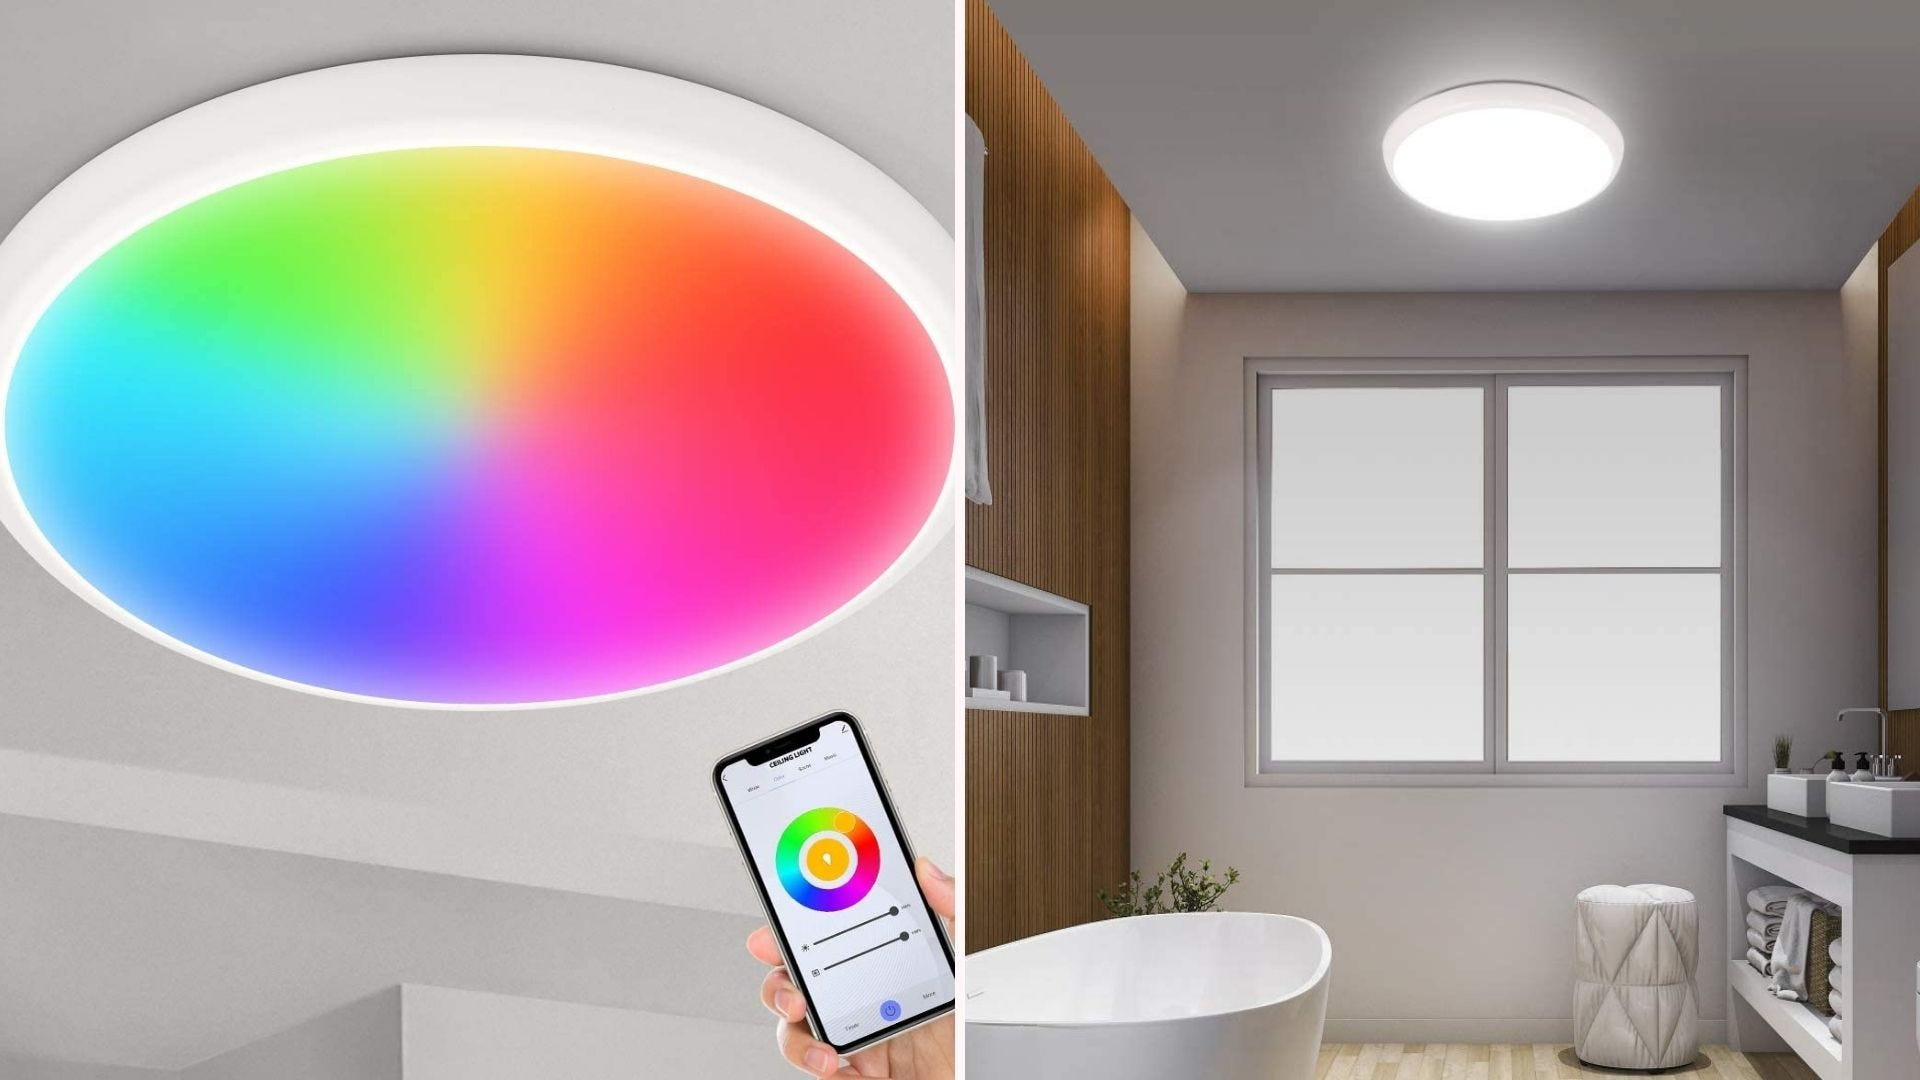 multicolored ceiling-mounted light being app-controlled; the light can also be plain white light